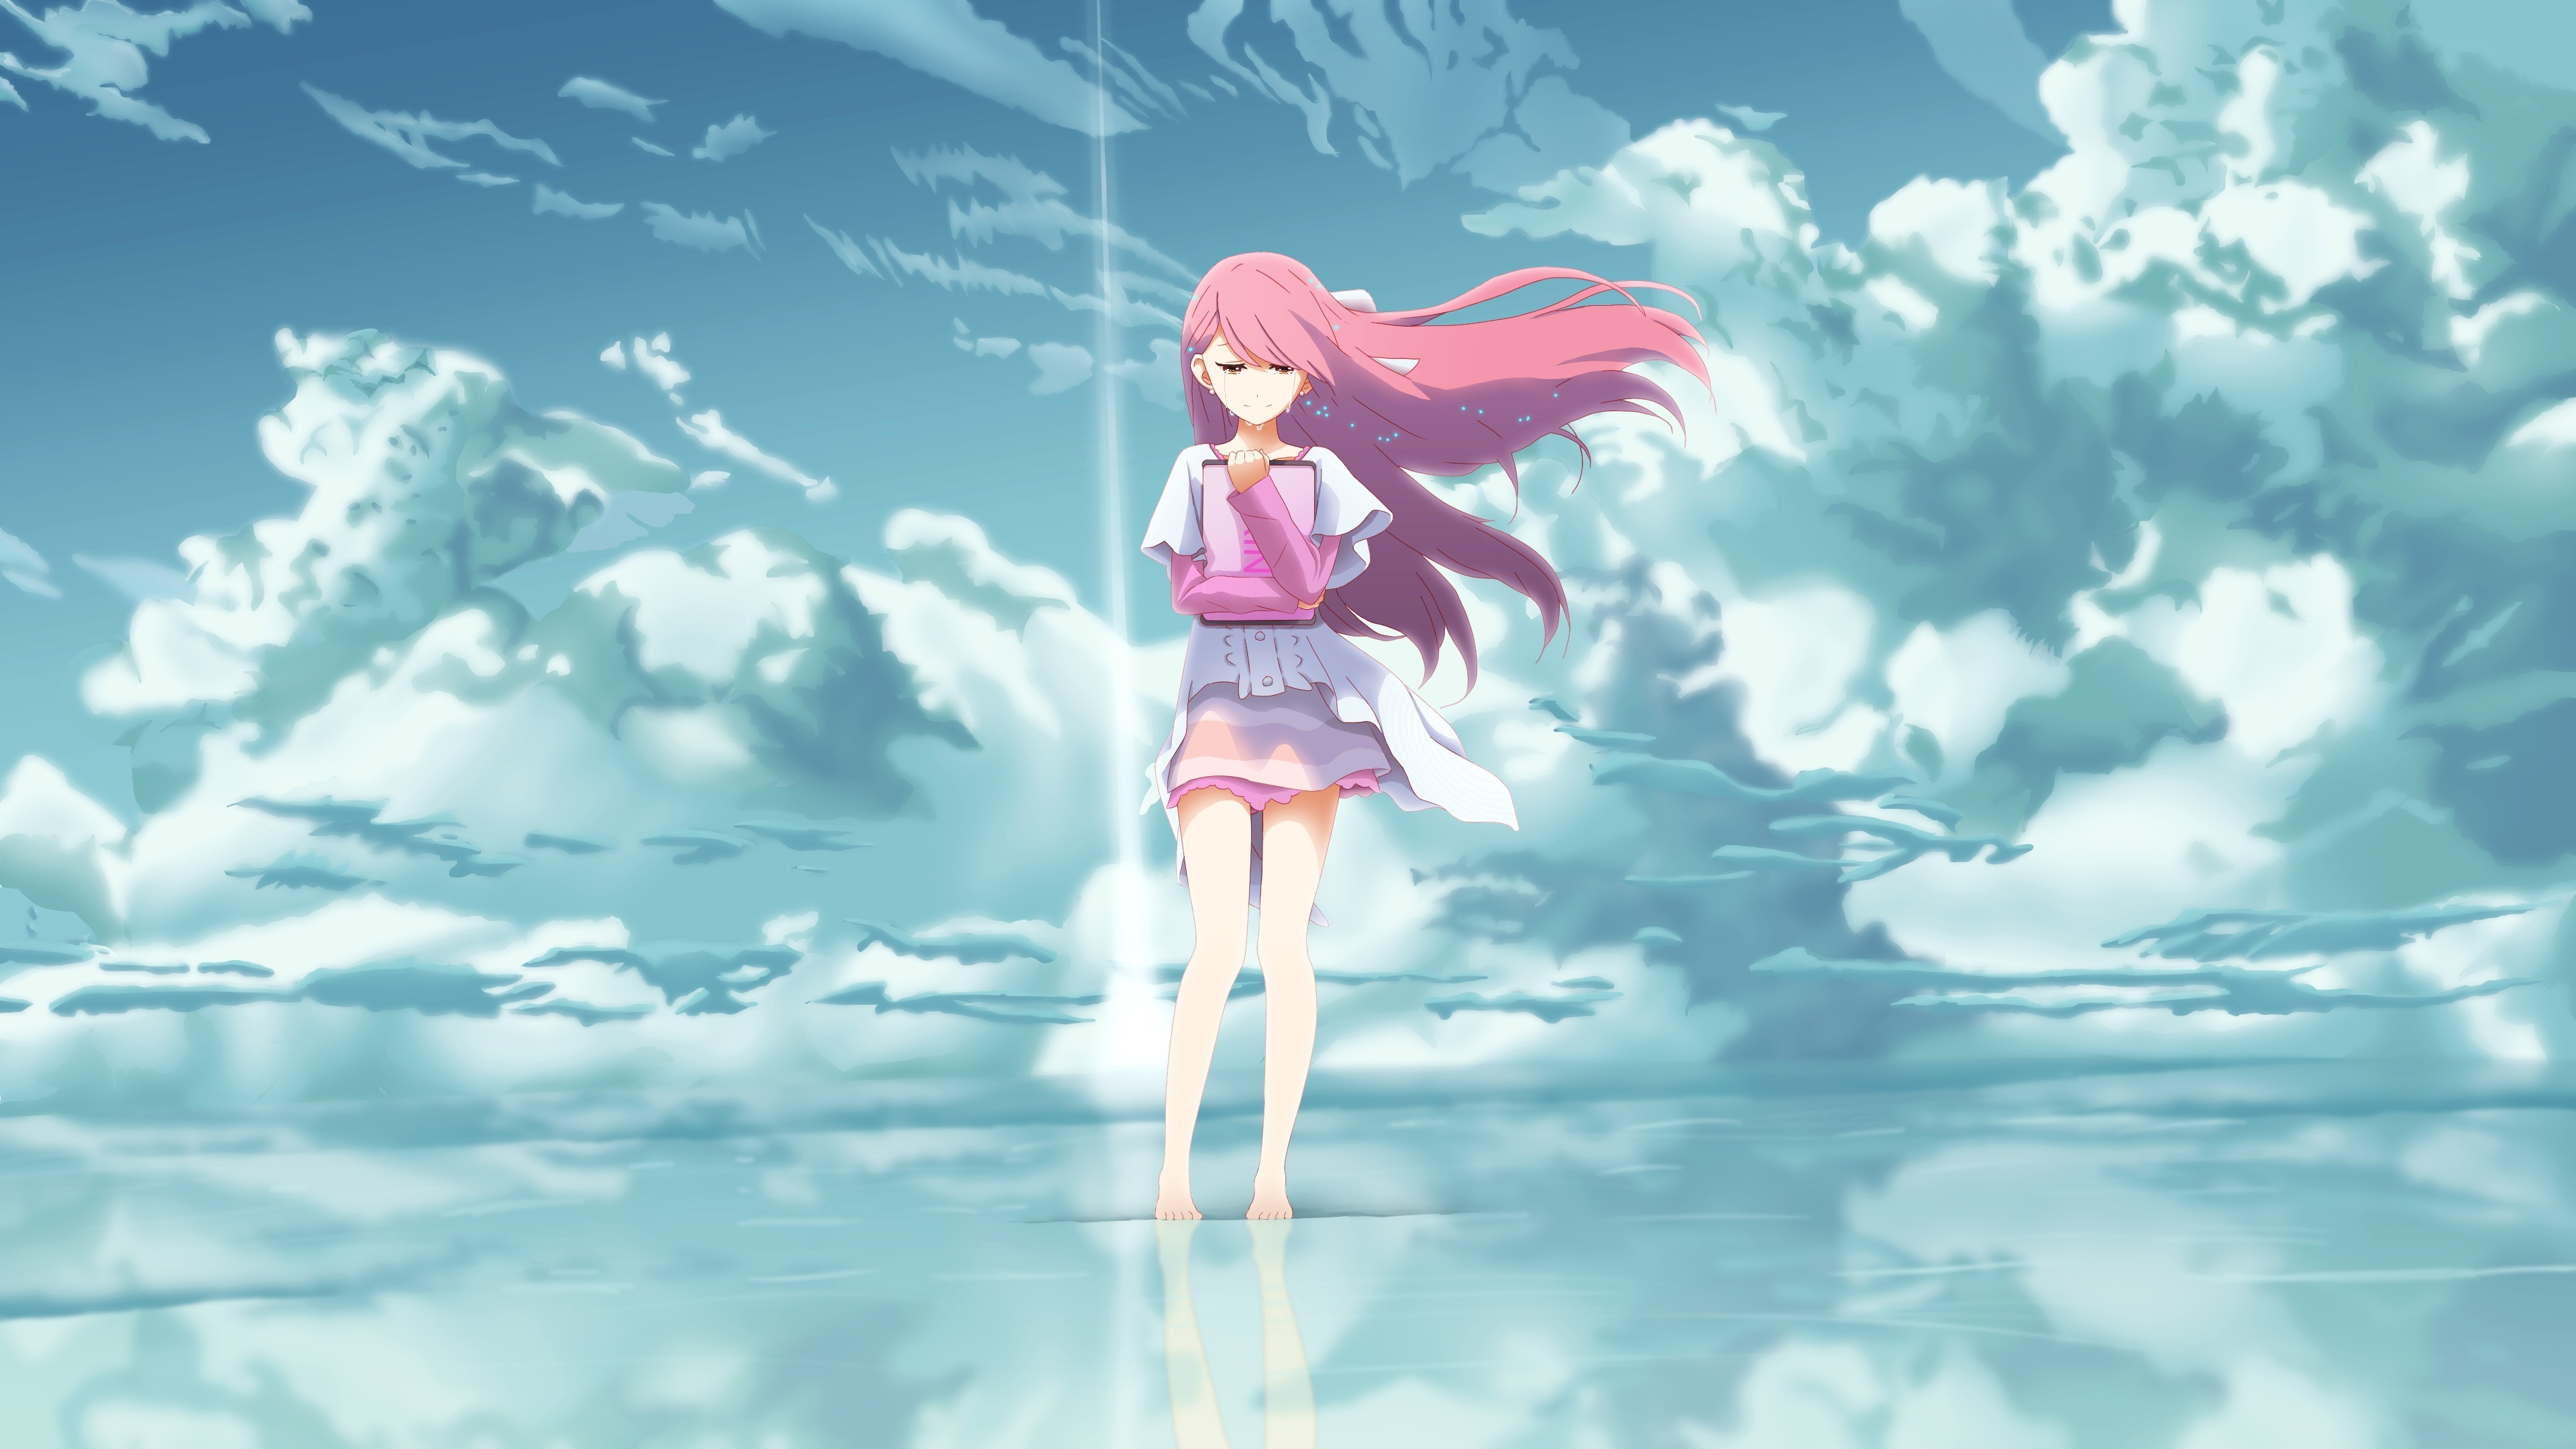 Anime Inspired Hd Fantasy Wallpapers For Your Collection: Anime Wallpaper 1080p (78+ Images